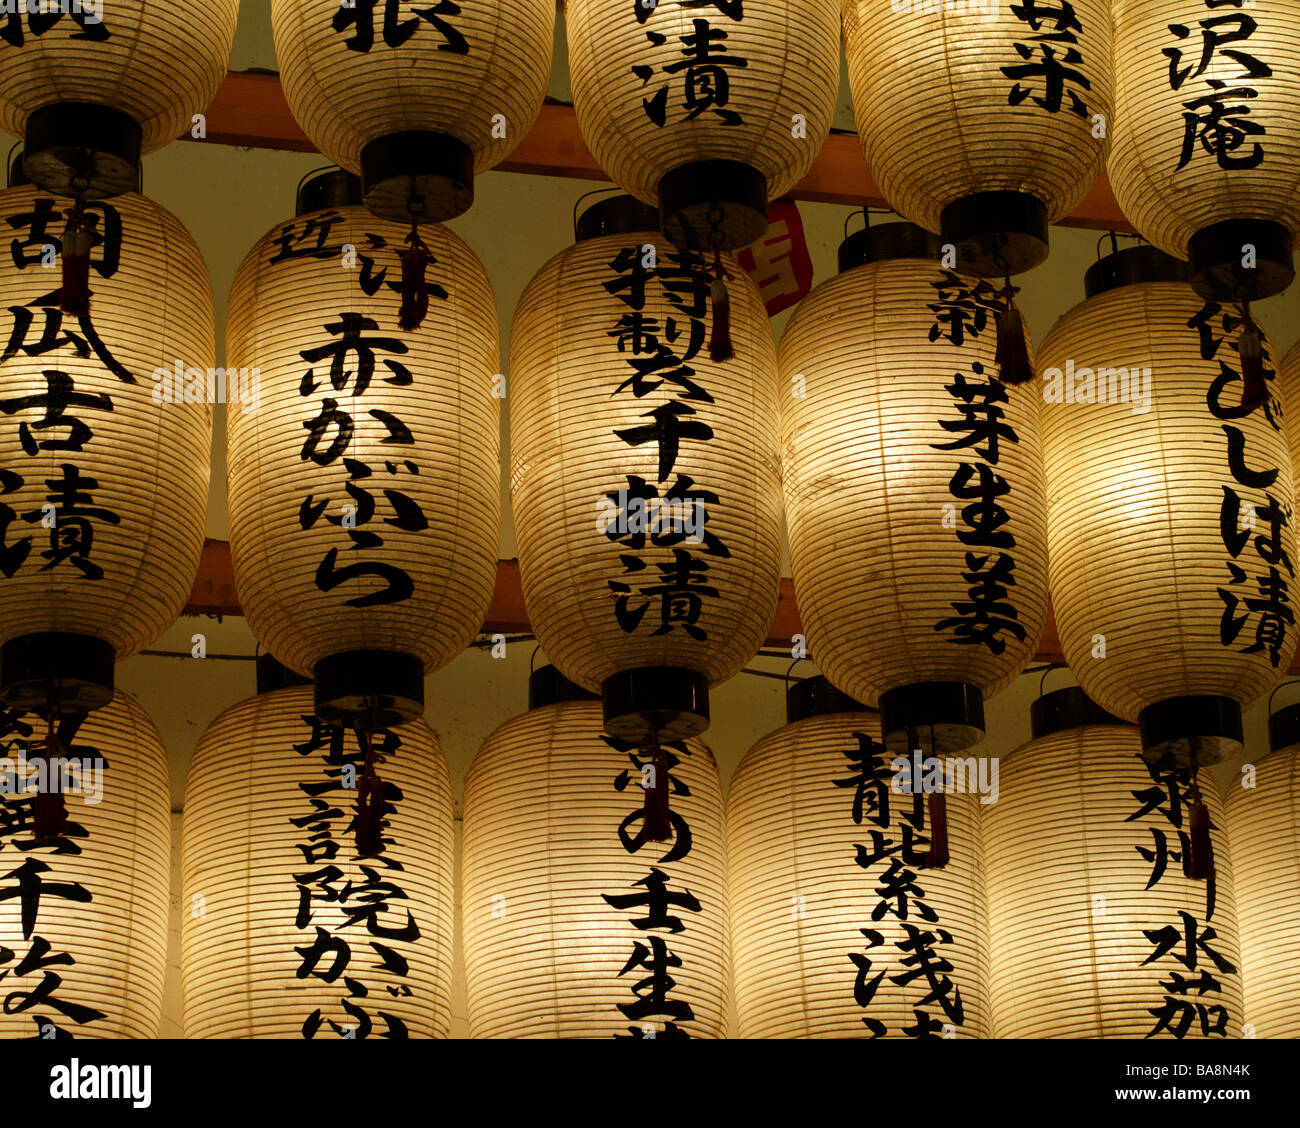 Colourful prayer lanterns and Japanese script in Kyoto, Japan - Stock Image